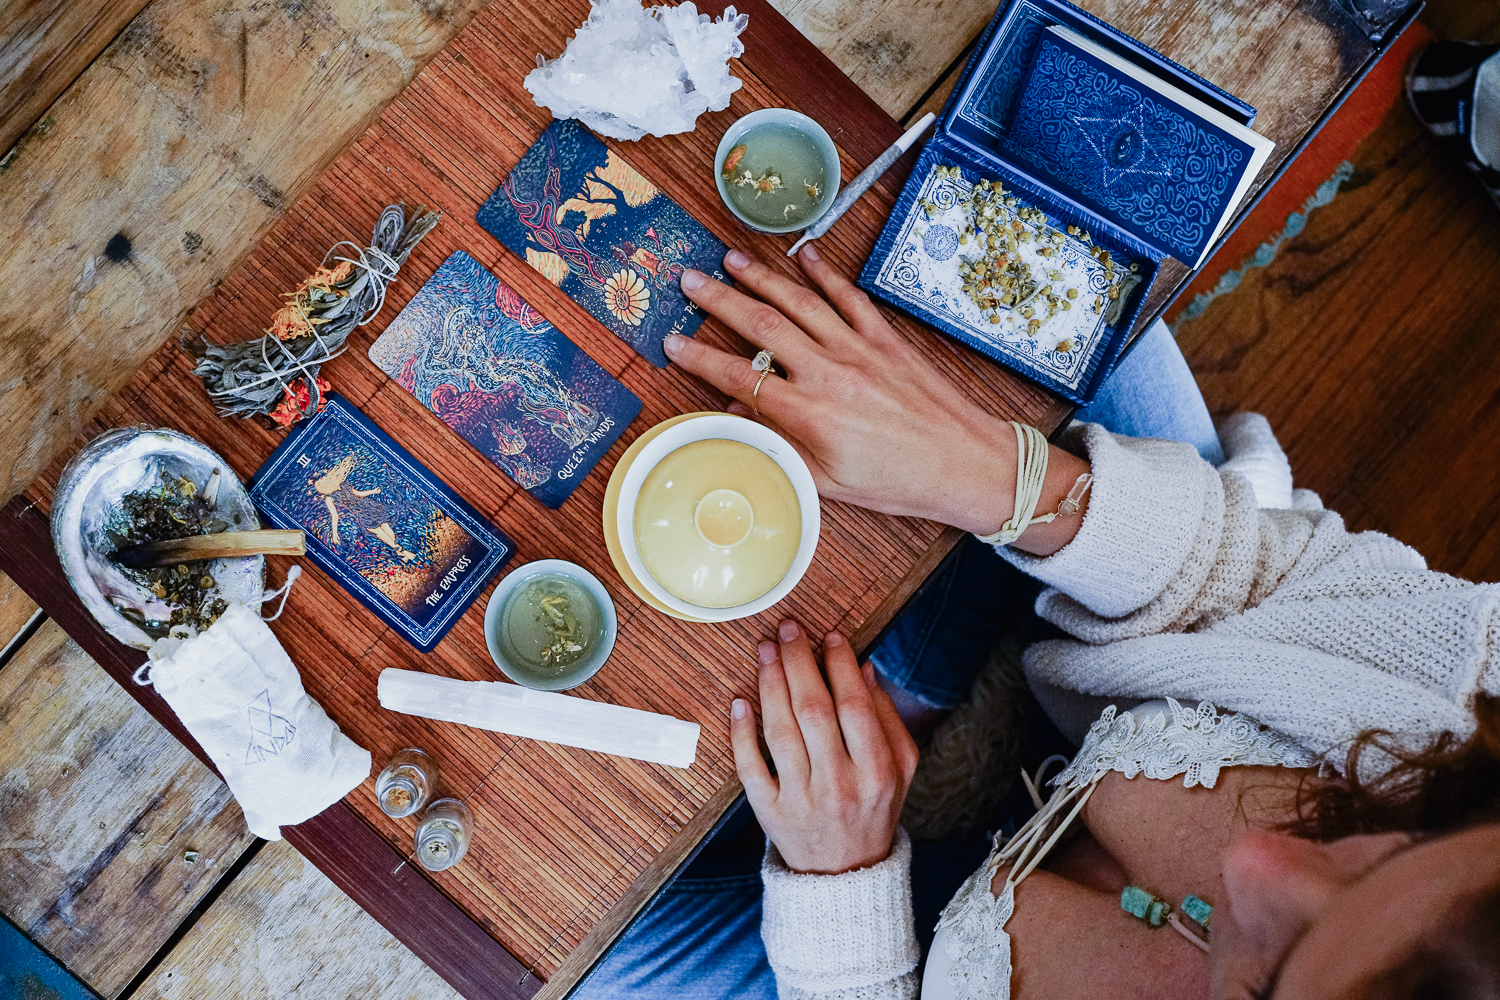 Ritual + Ceremony / Intention Setting